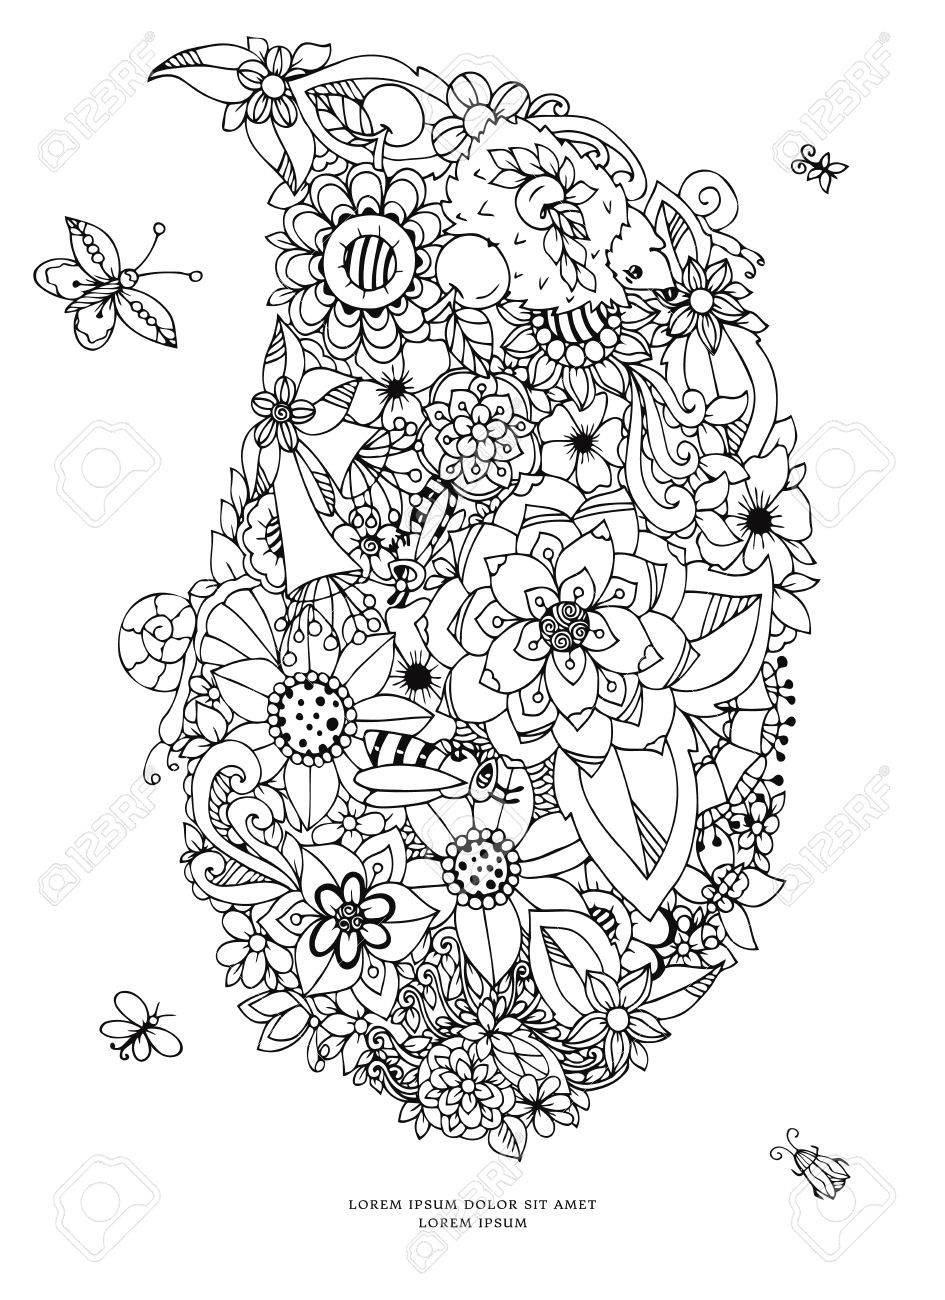 Vector illustration zentangl card with flowers. Doodle flowers,..